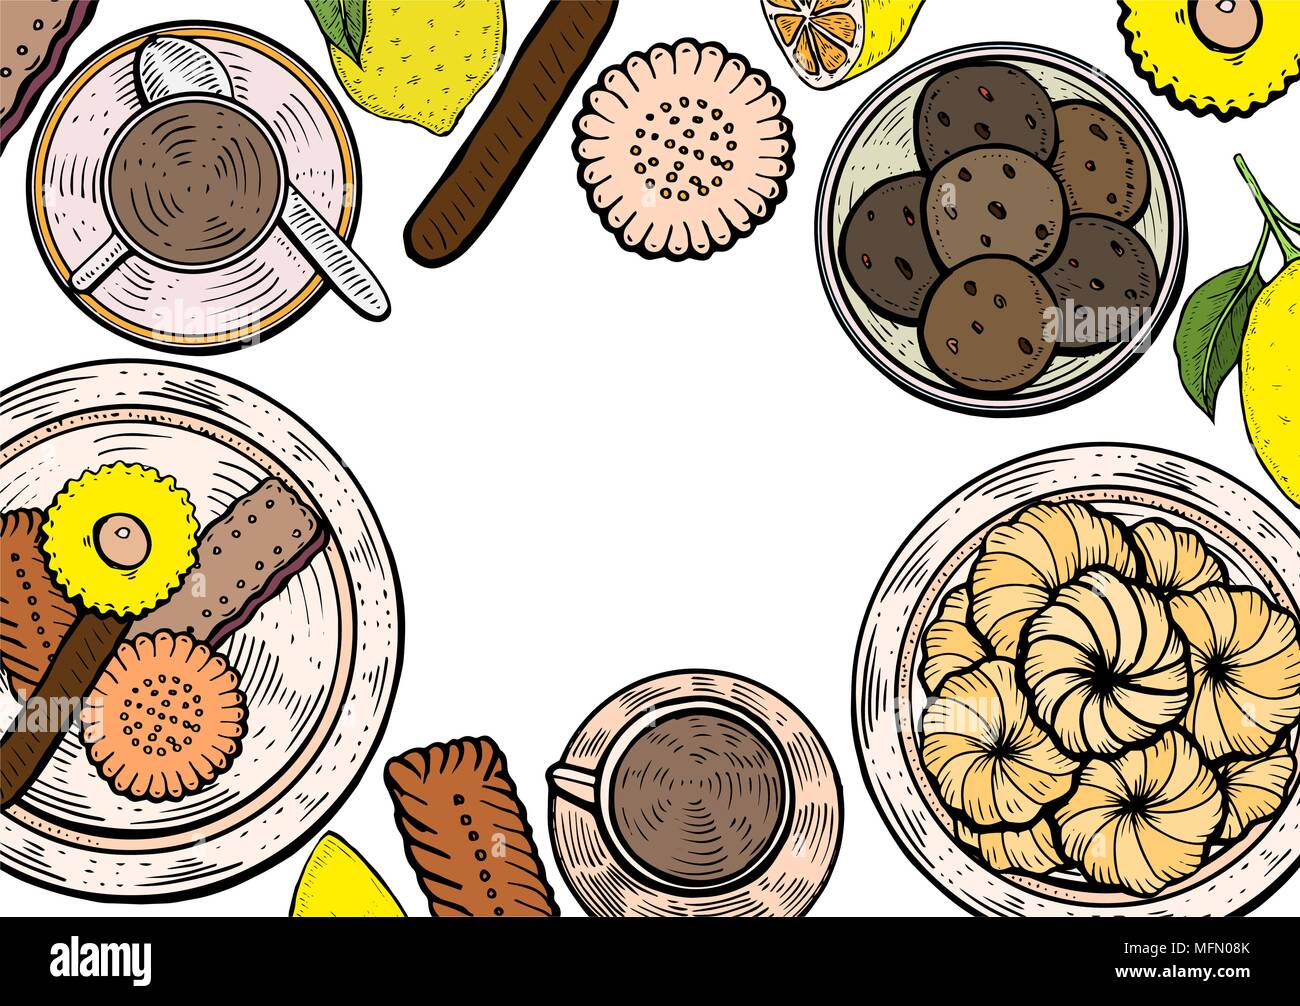 Food menu background. Middle eastern food, hand drawn. Oriental sweets vector illustration. Linear graphic. Colorful vector illustration. - Stock Vector